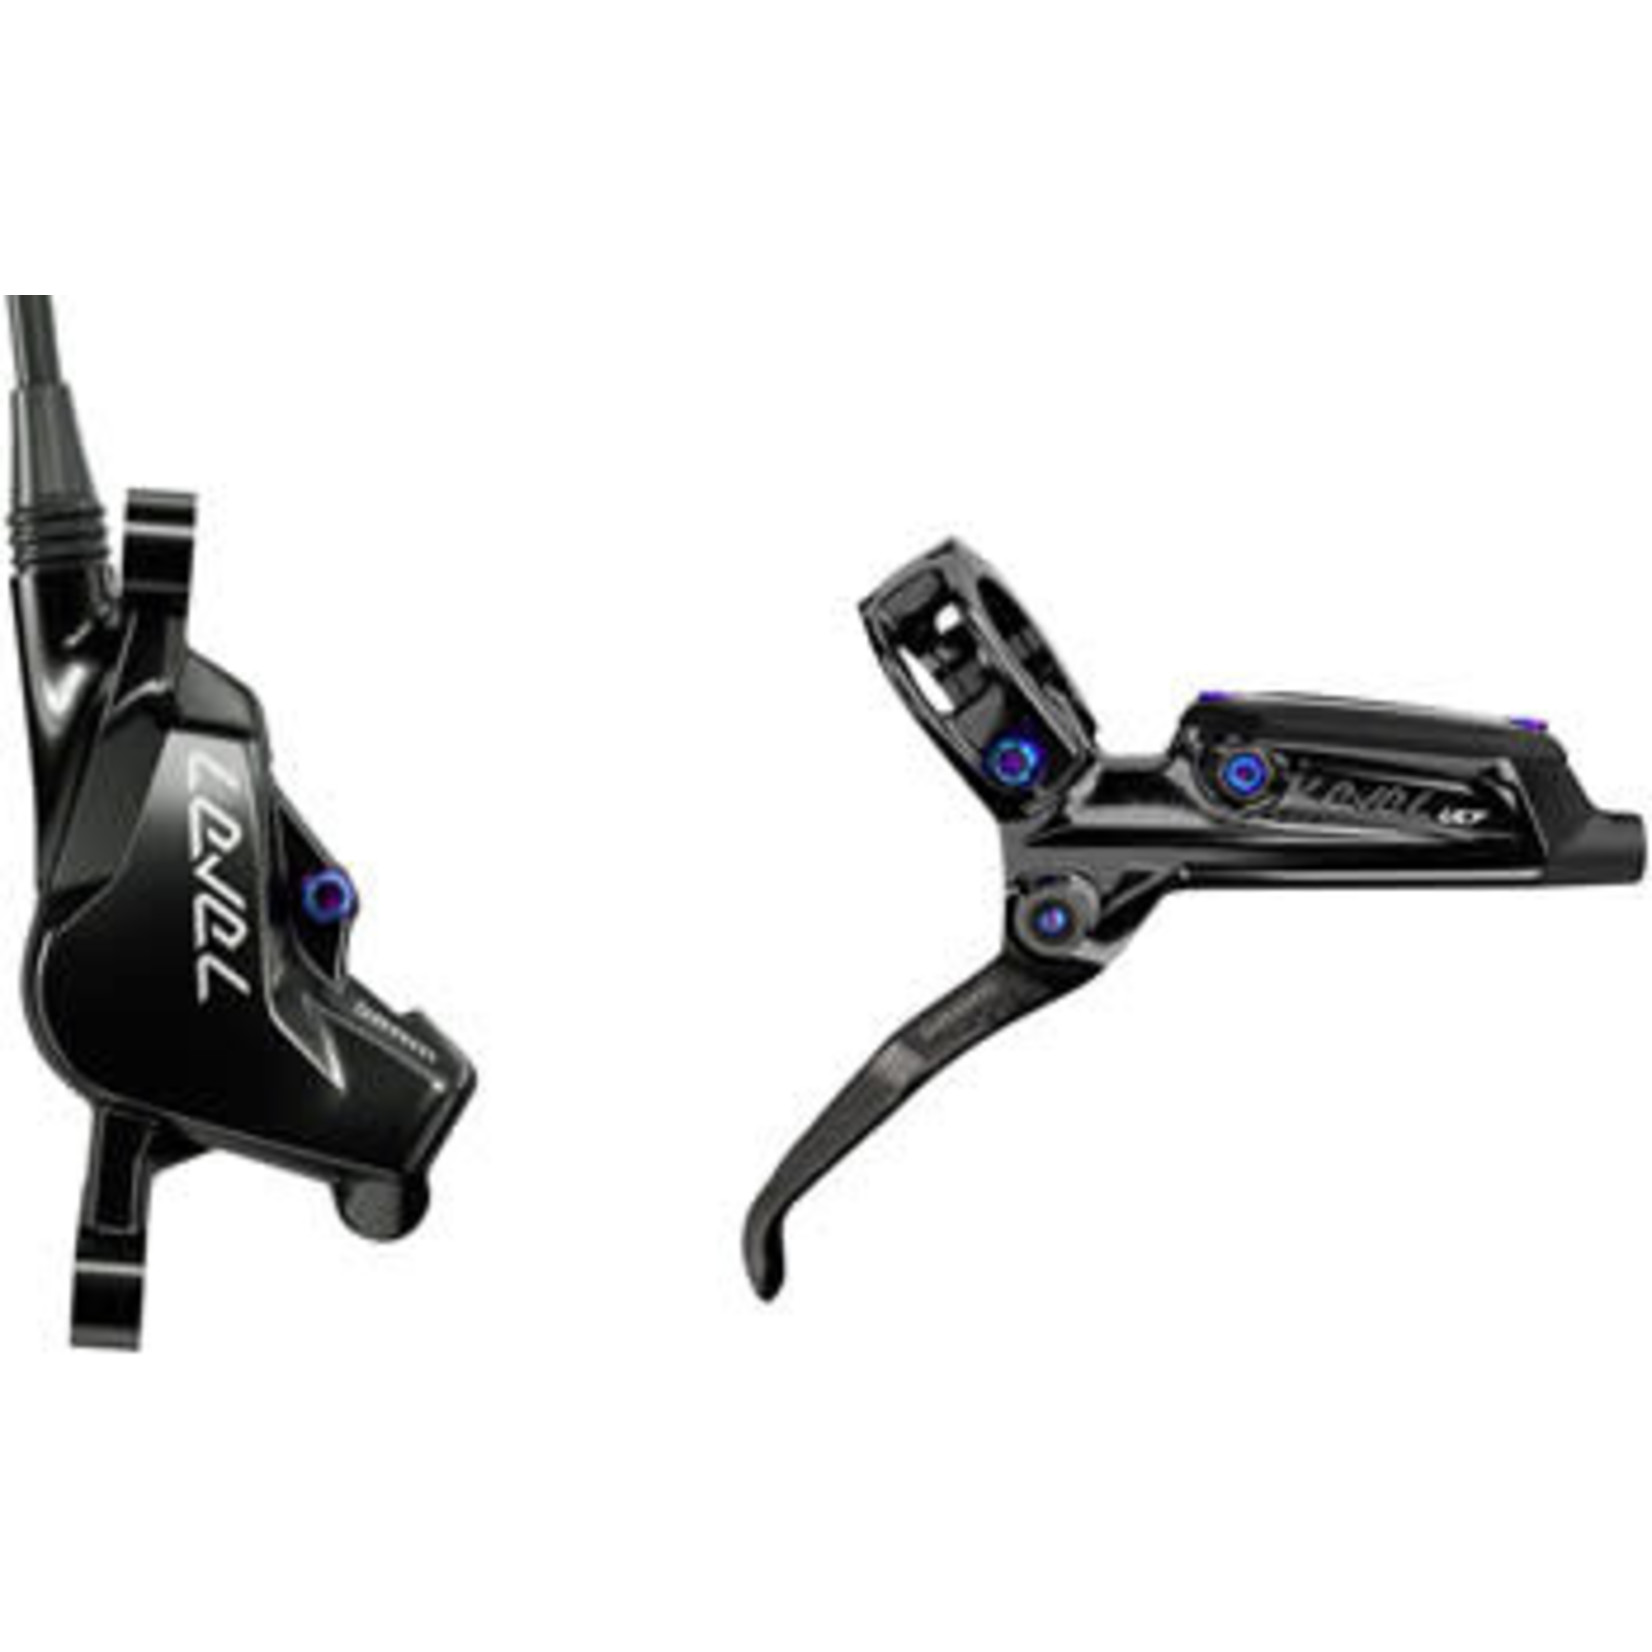 SRAM SRAM Level Ultimate Disc Brake and Lever - Front, Hydraulic, Post Mount, Black with Rainbow Hardware, B1